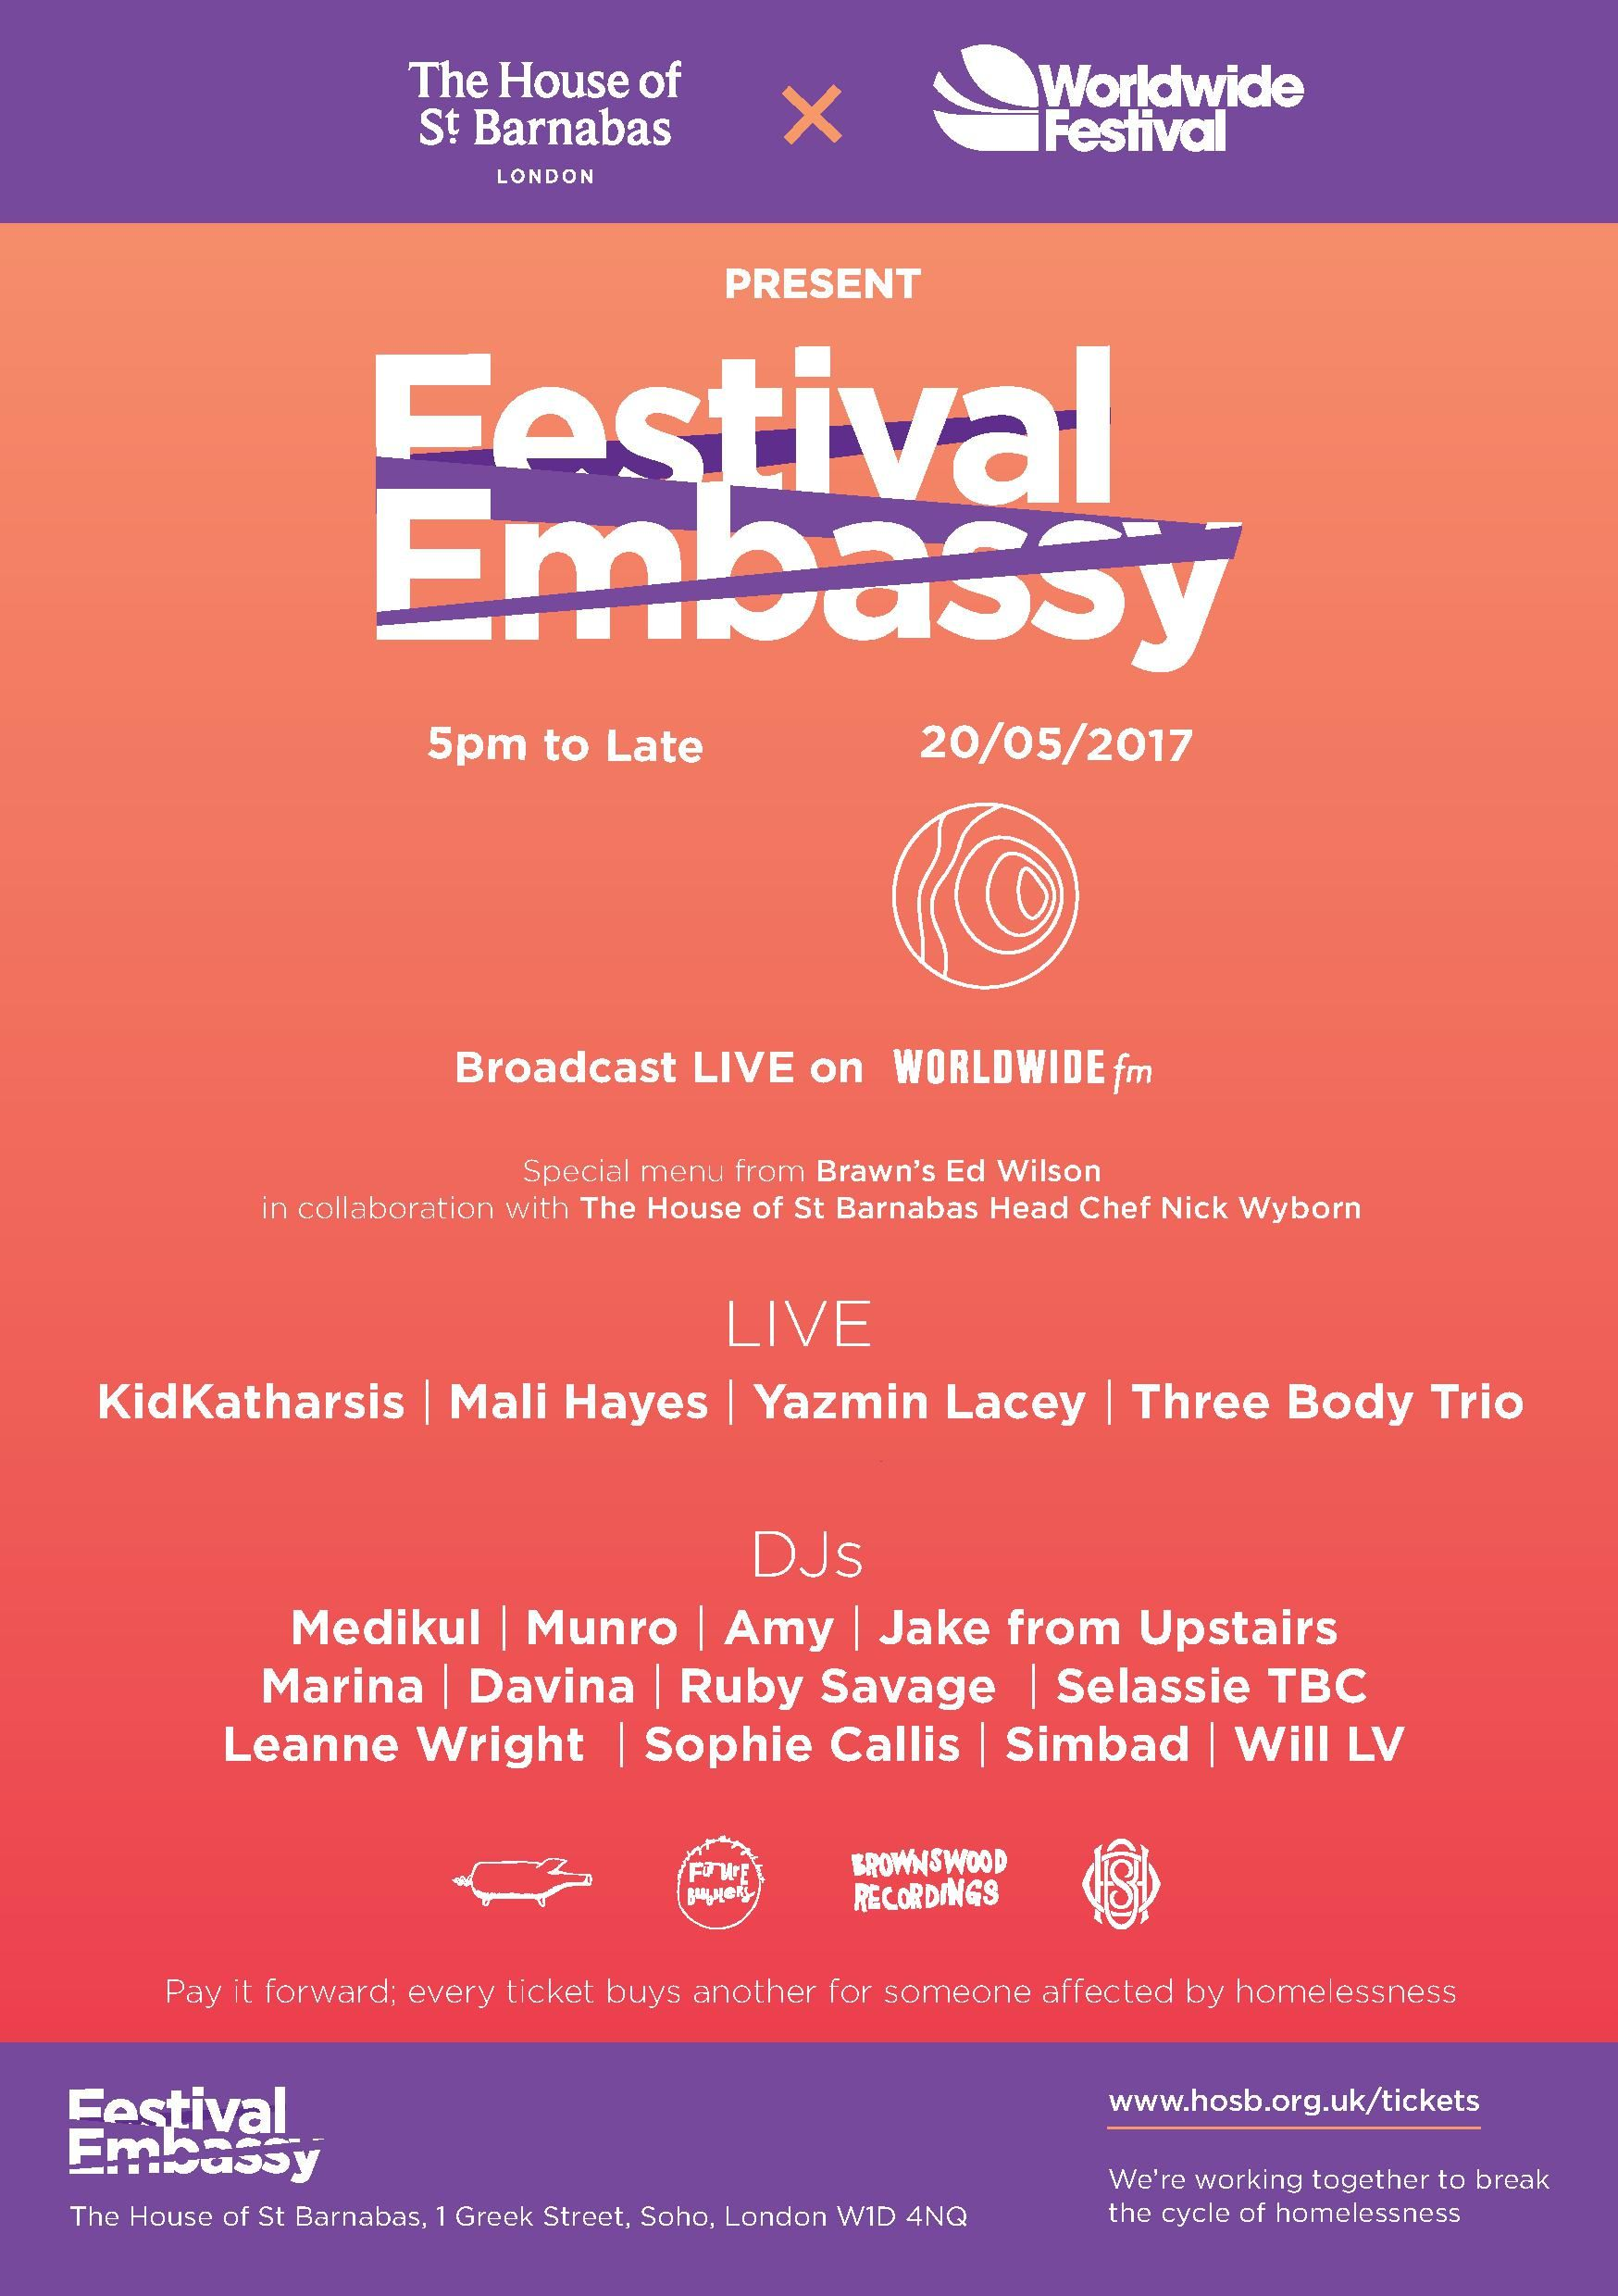 Poster for the Festival Embassy event with Worldwide Festival. Includes line up (also listed above in the copy)